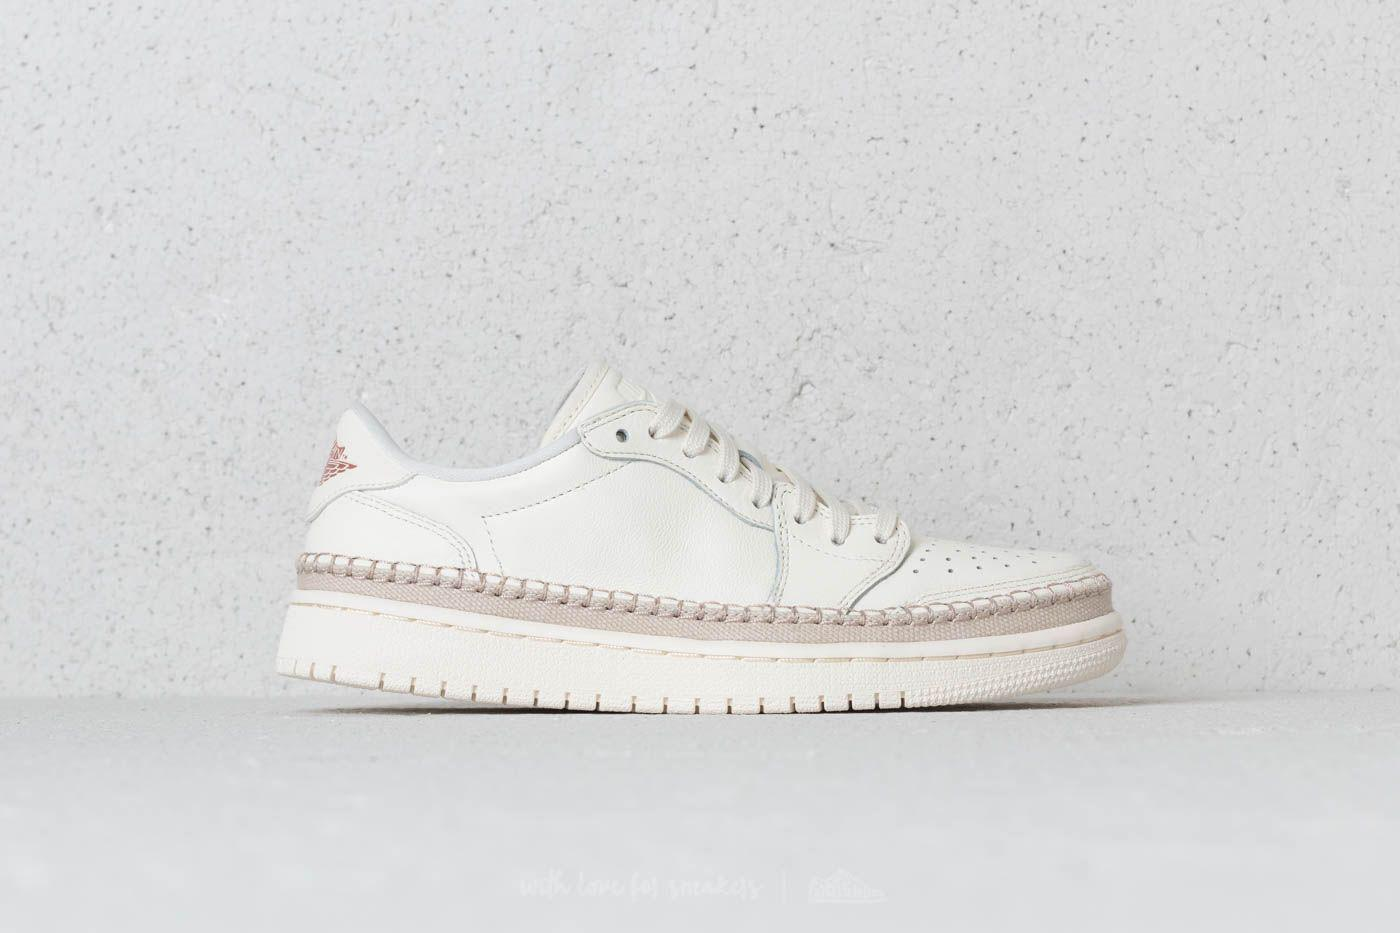 5298f9be2980 Lyst - Nike Air 1 Retro Low Ns Wmns Sail  Metallic Red Bronze in ...